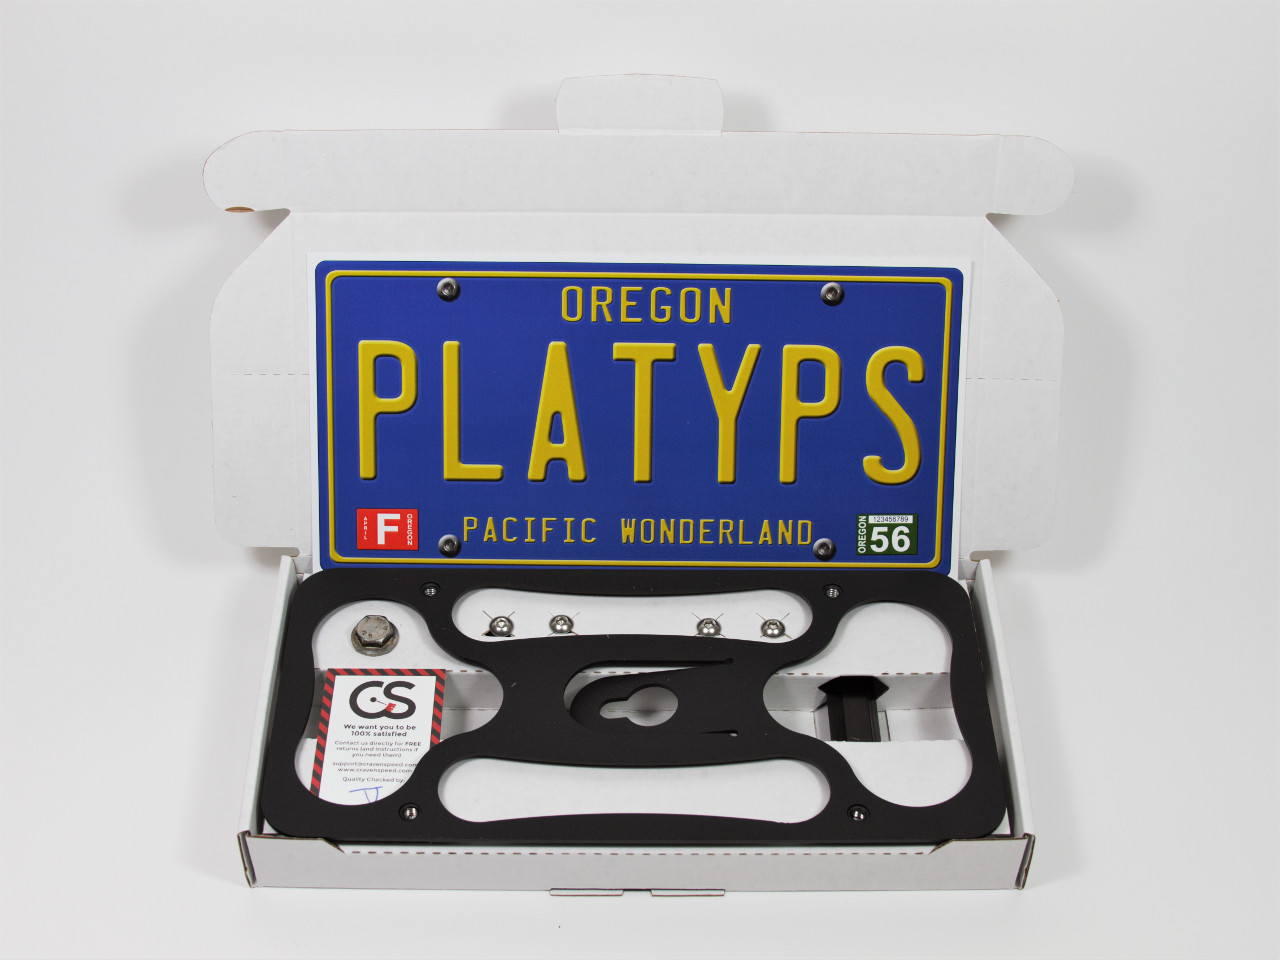 Assembled kit of The Platypus License Plate Mount for 2006-2012 BMW 335i